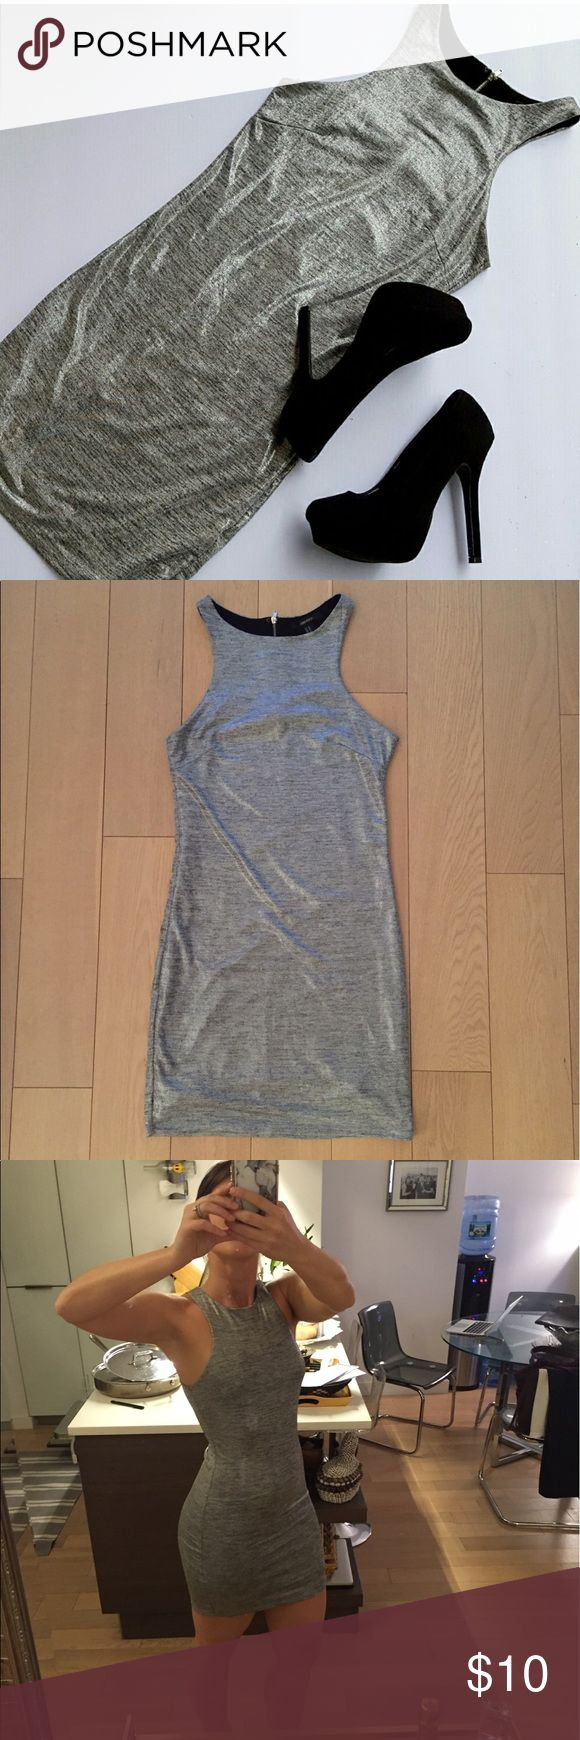 Silver bodycon mini dress Super cute silver racerback bodycon dress. Super soft and comfortable! Never worn! Forever 21 Dresses Mini